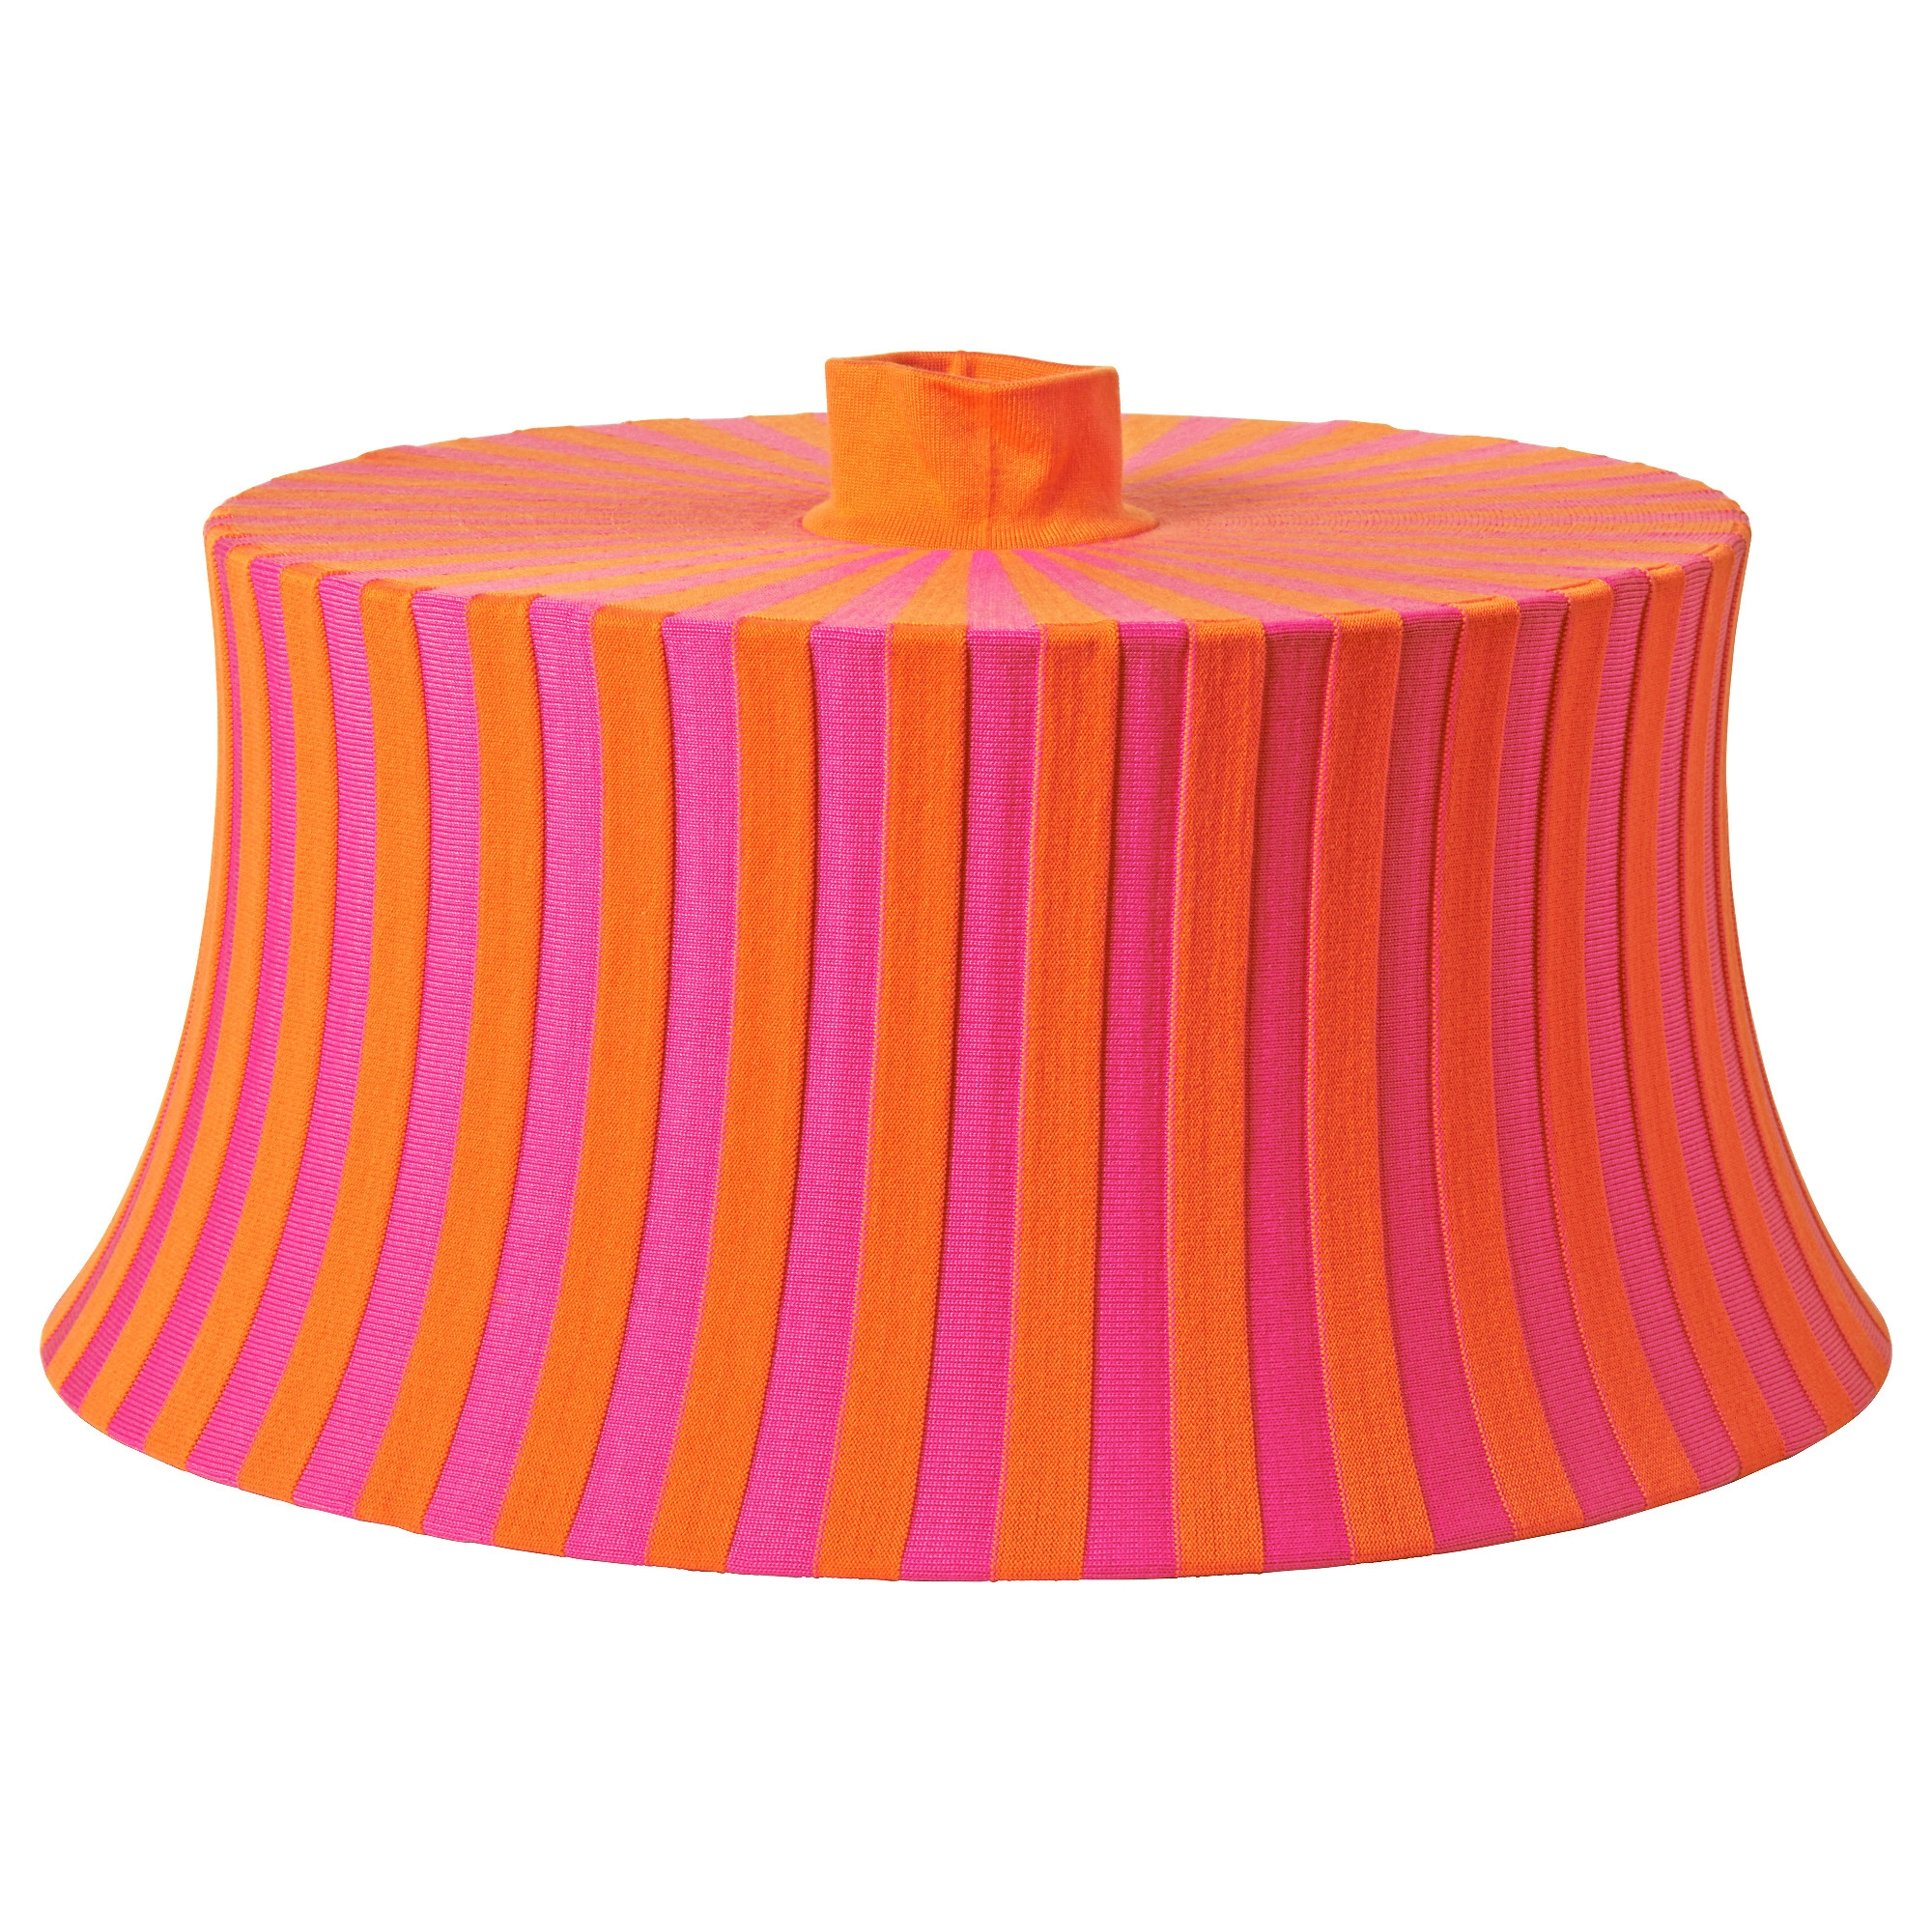 Orange and turquoise lamp shade -  Mtevik Lamp Shade Orange Pink Stripe Height 10 Diameter 22